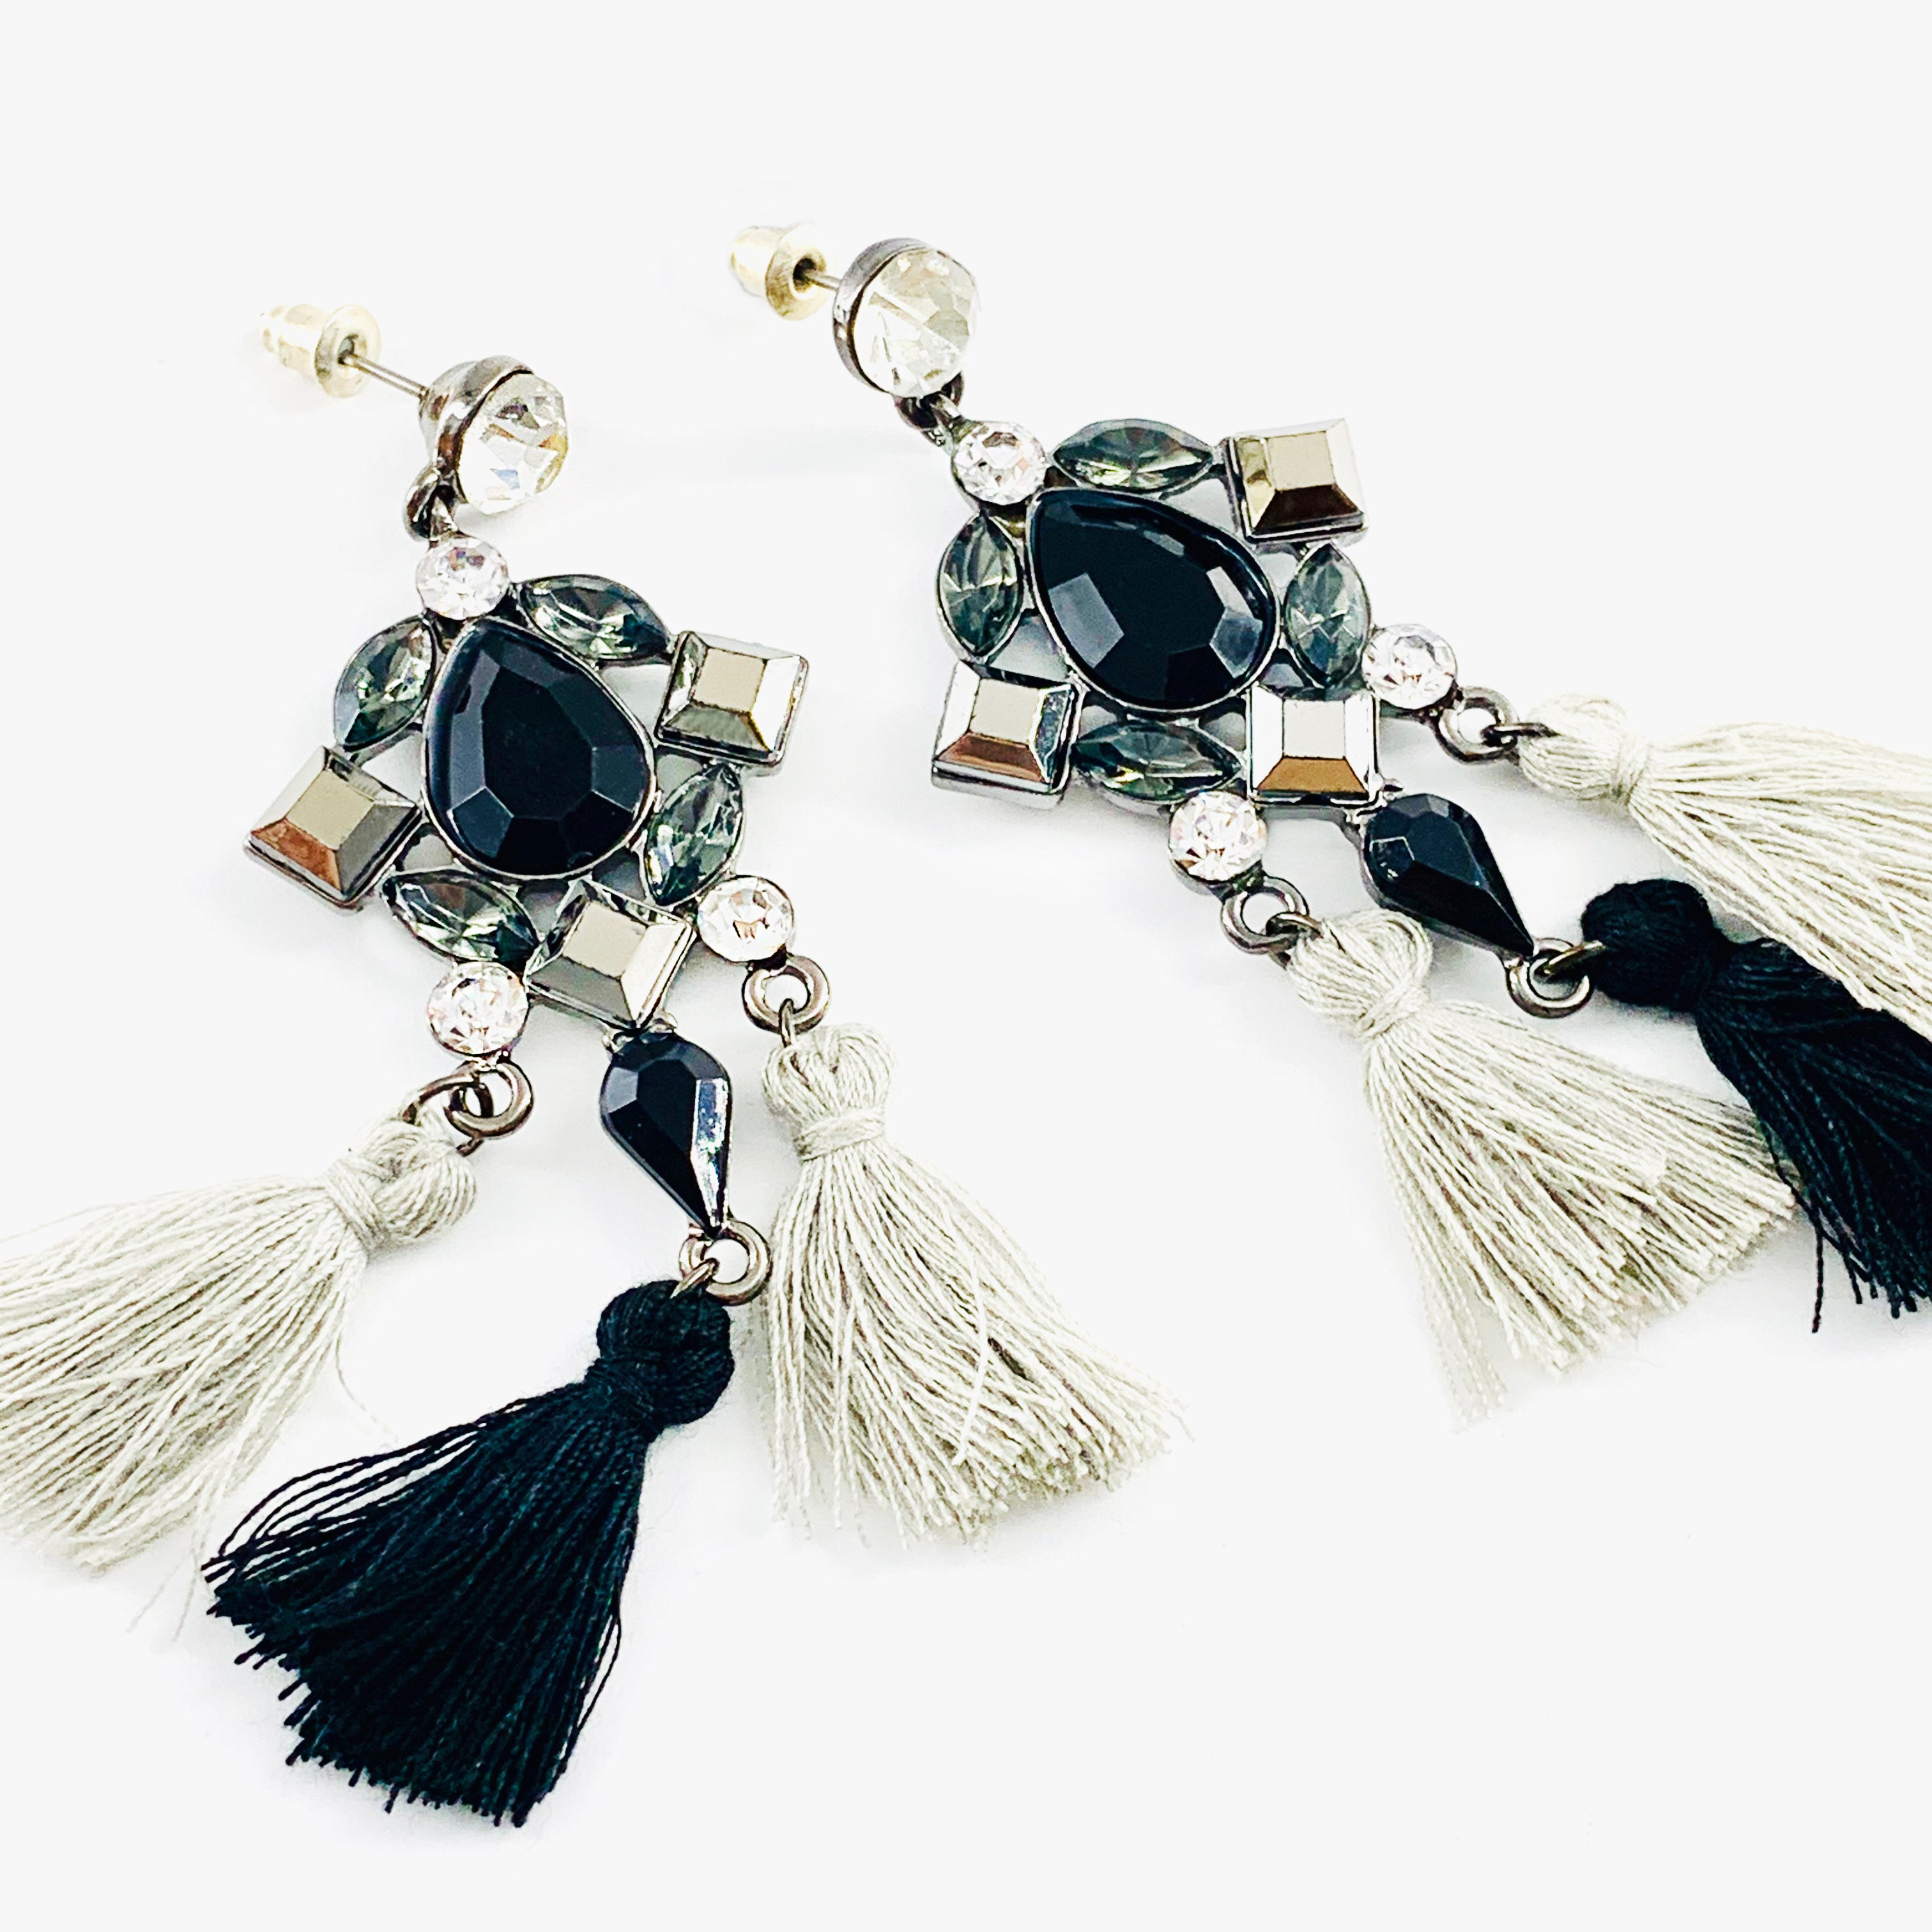 Dangling earrings with facet stones and tassels